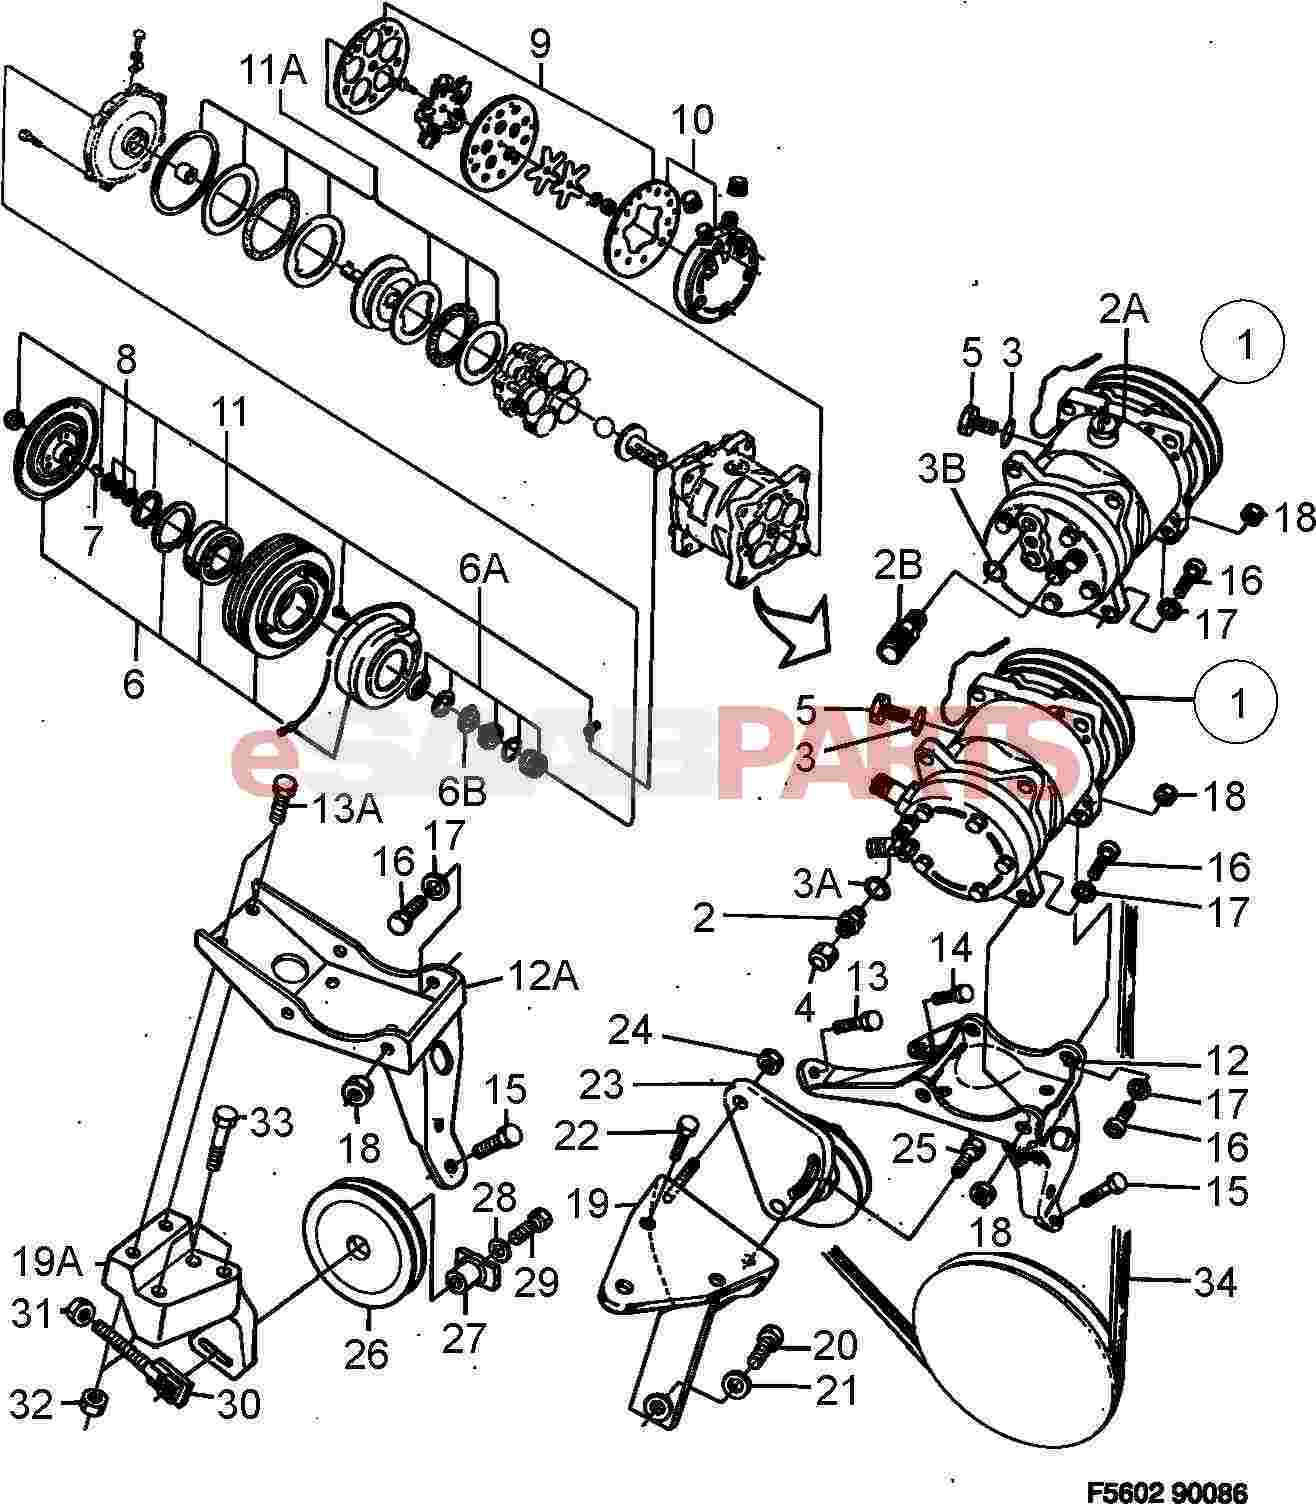 [DIAGRAM] 1999 Saab 9 3 Turbo Wiring Diagram FULL Version